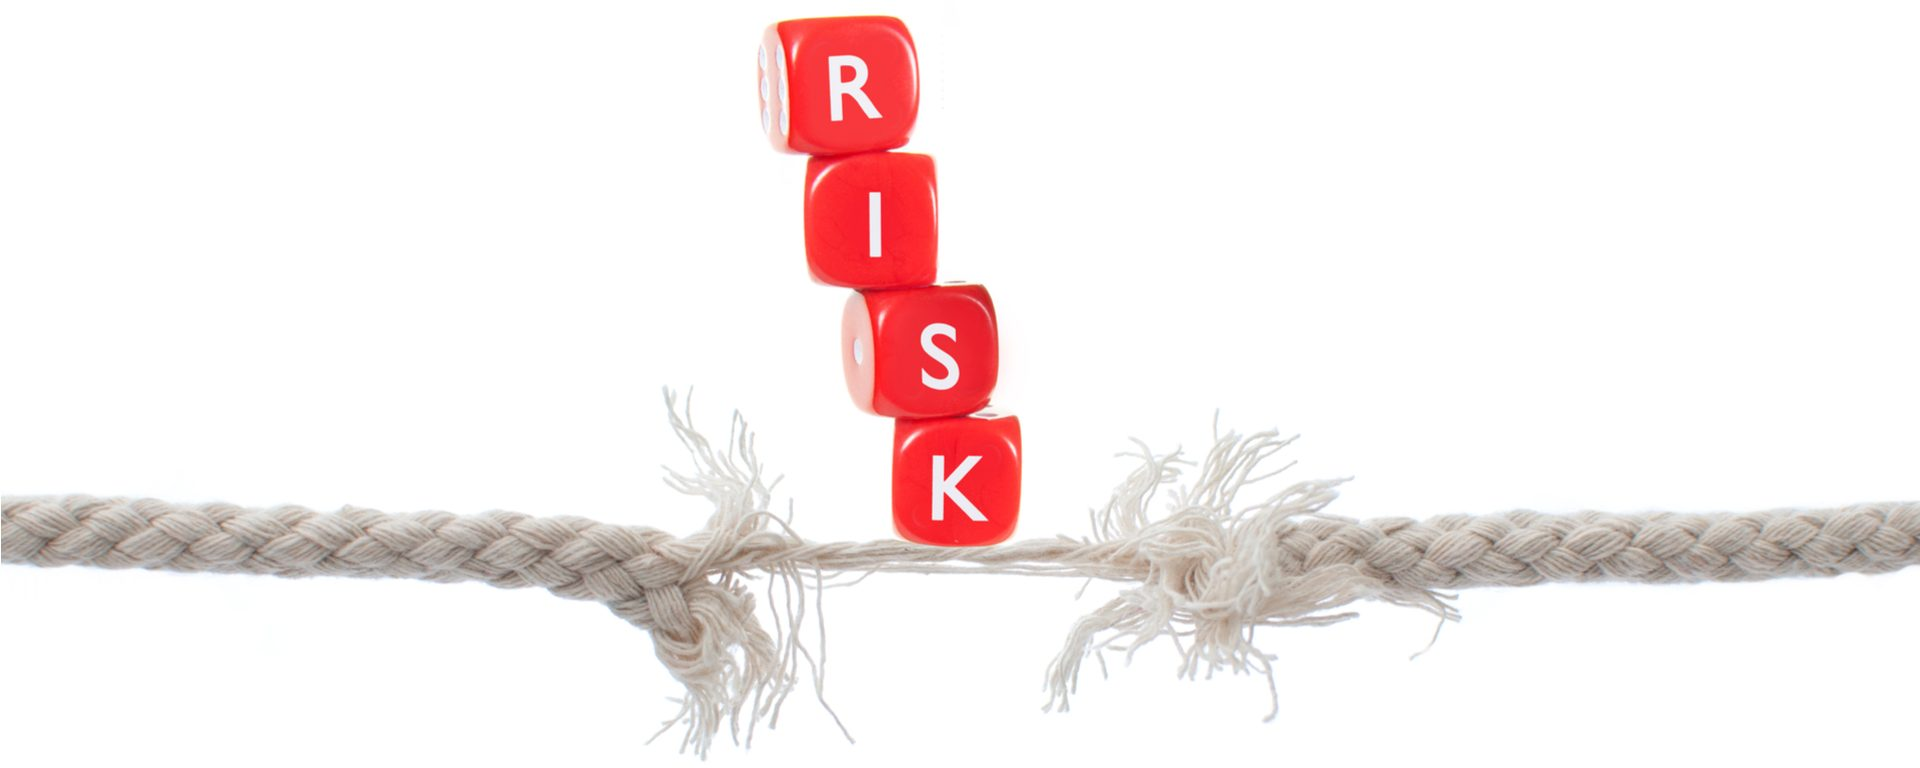 The Four Emerging Trends in Corporate Risk Management